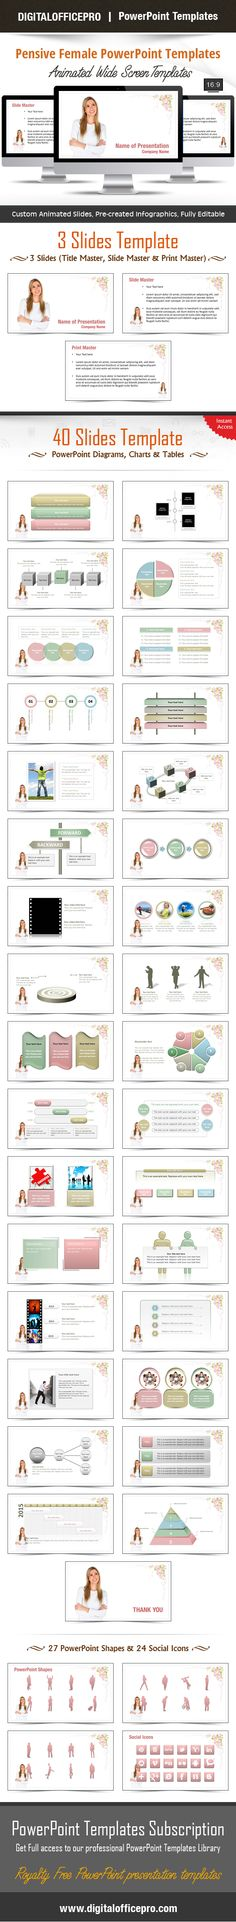 Romantic Relations PowerPoint Template Backgrounds Romantic - 3d powerpoint template